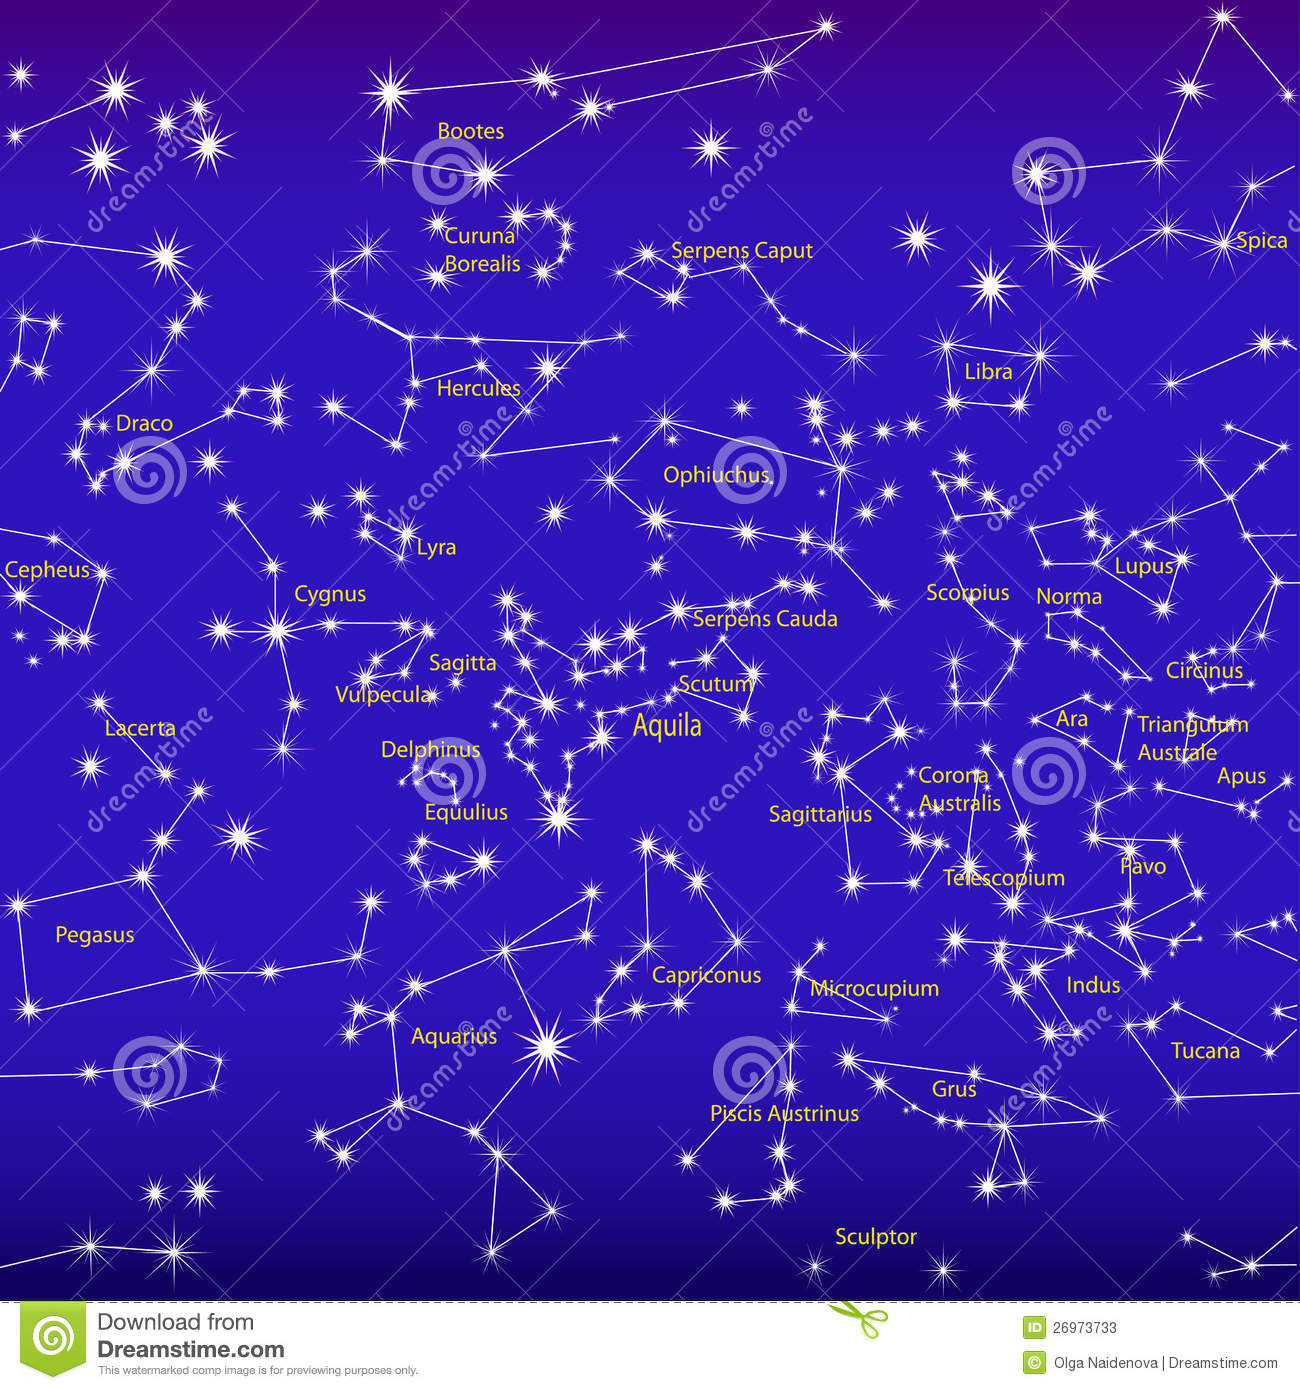 All Constellations Of The Zodiac Night sky and constellations